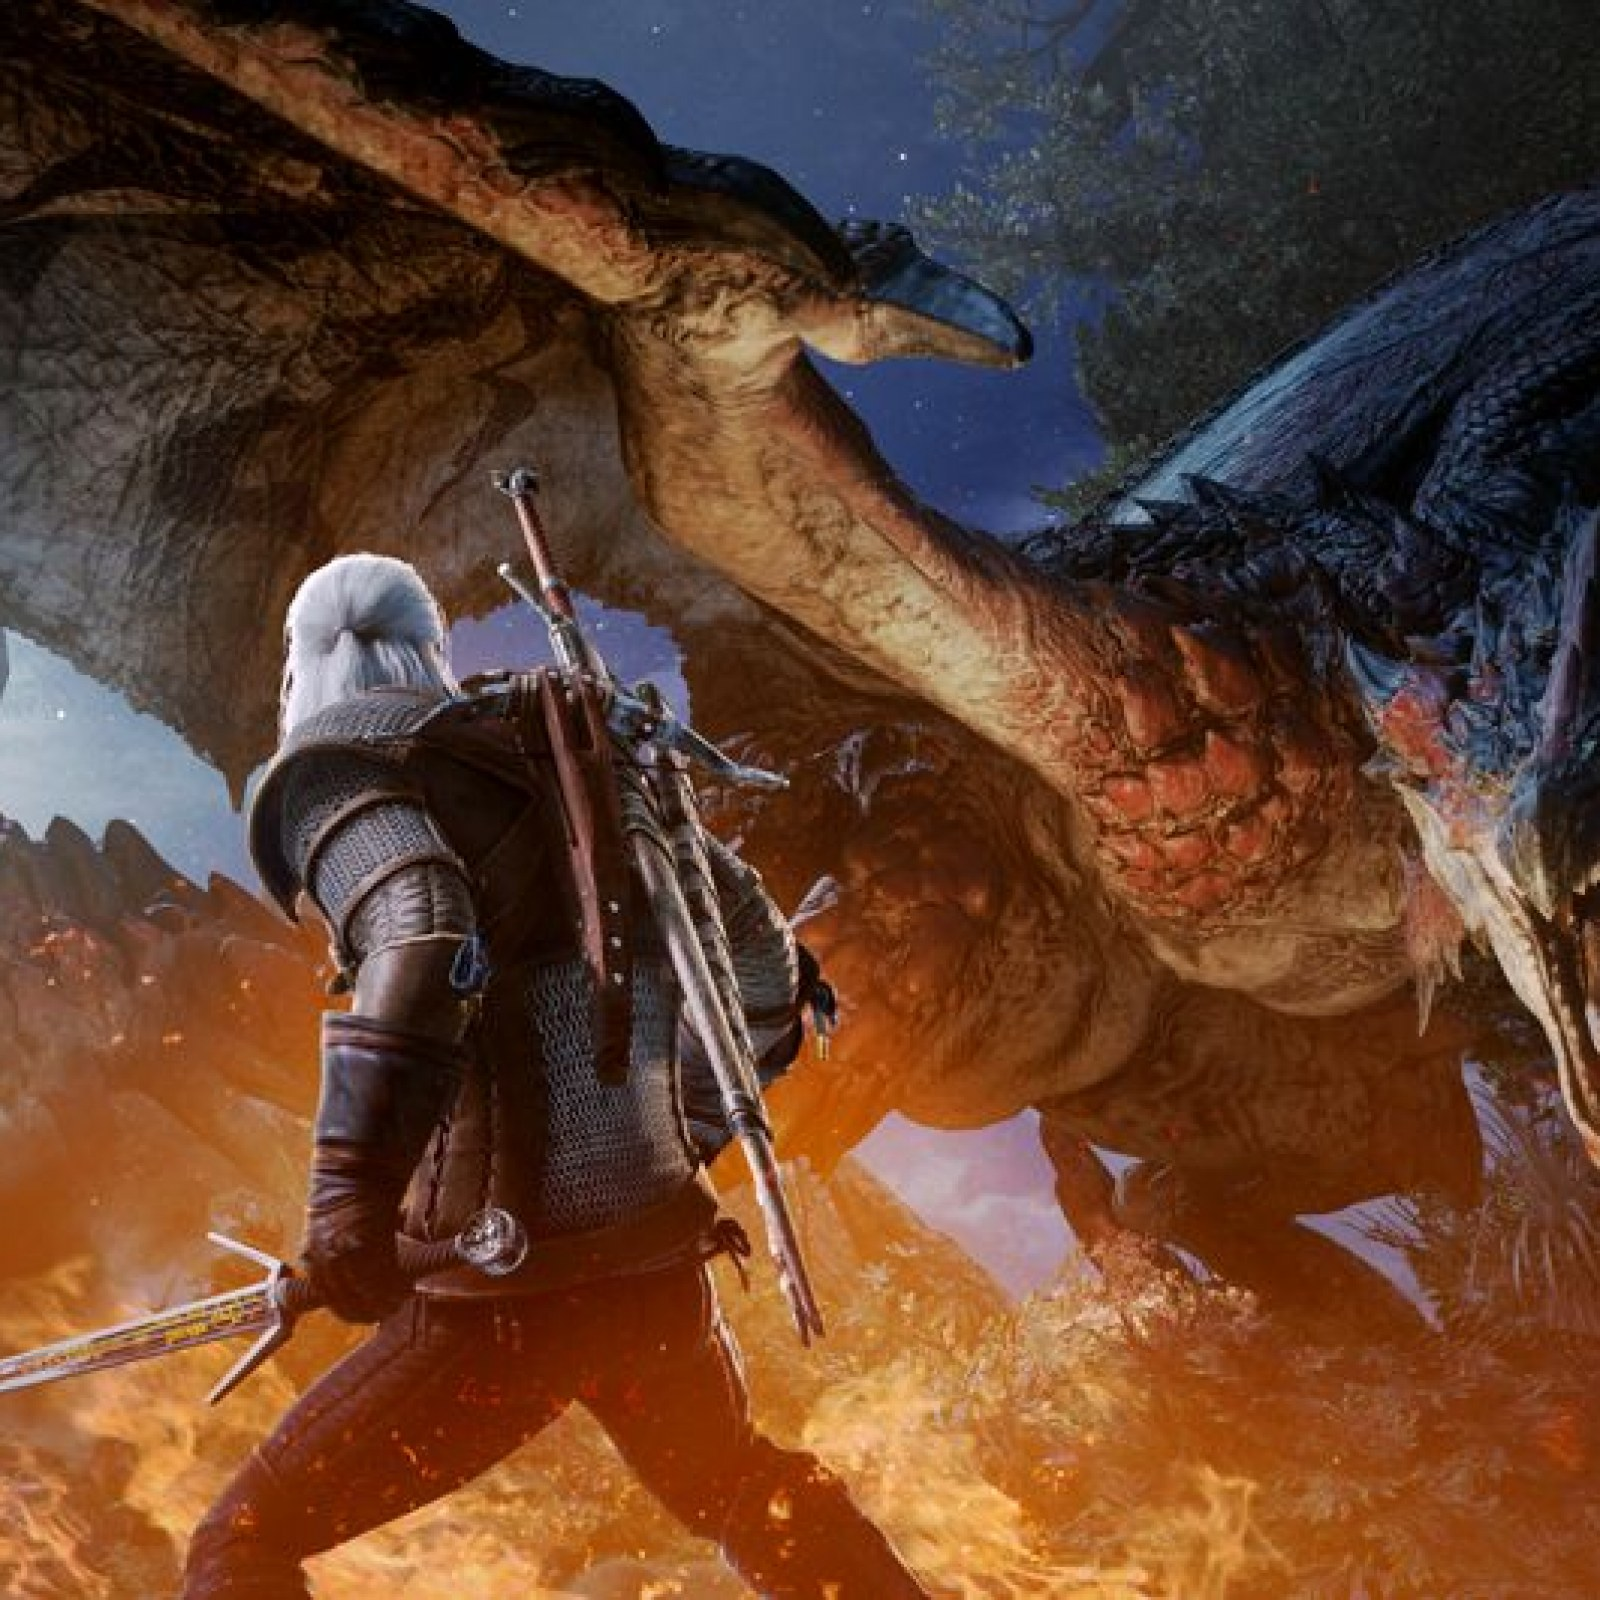 Monster Hunter World' and 'The Witcher 3' Event: Start Time